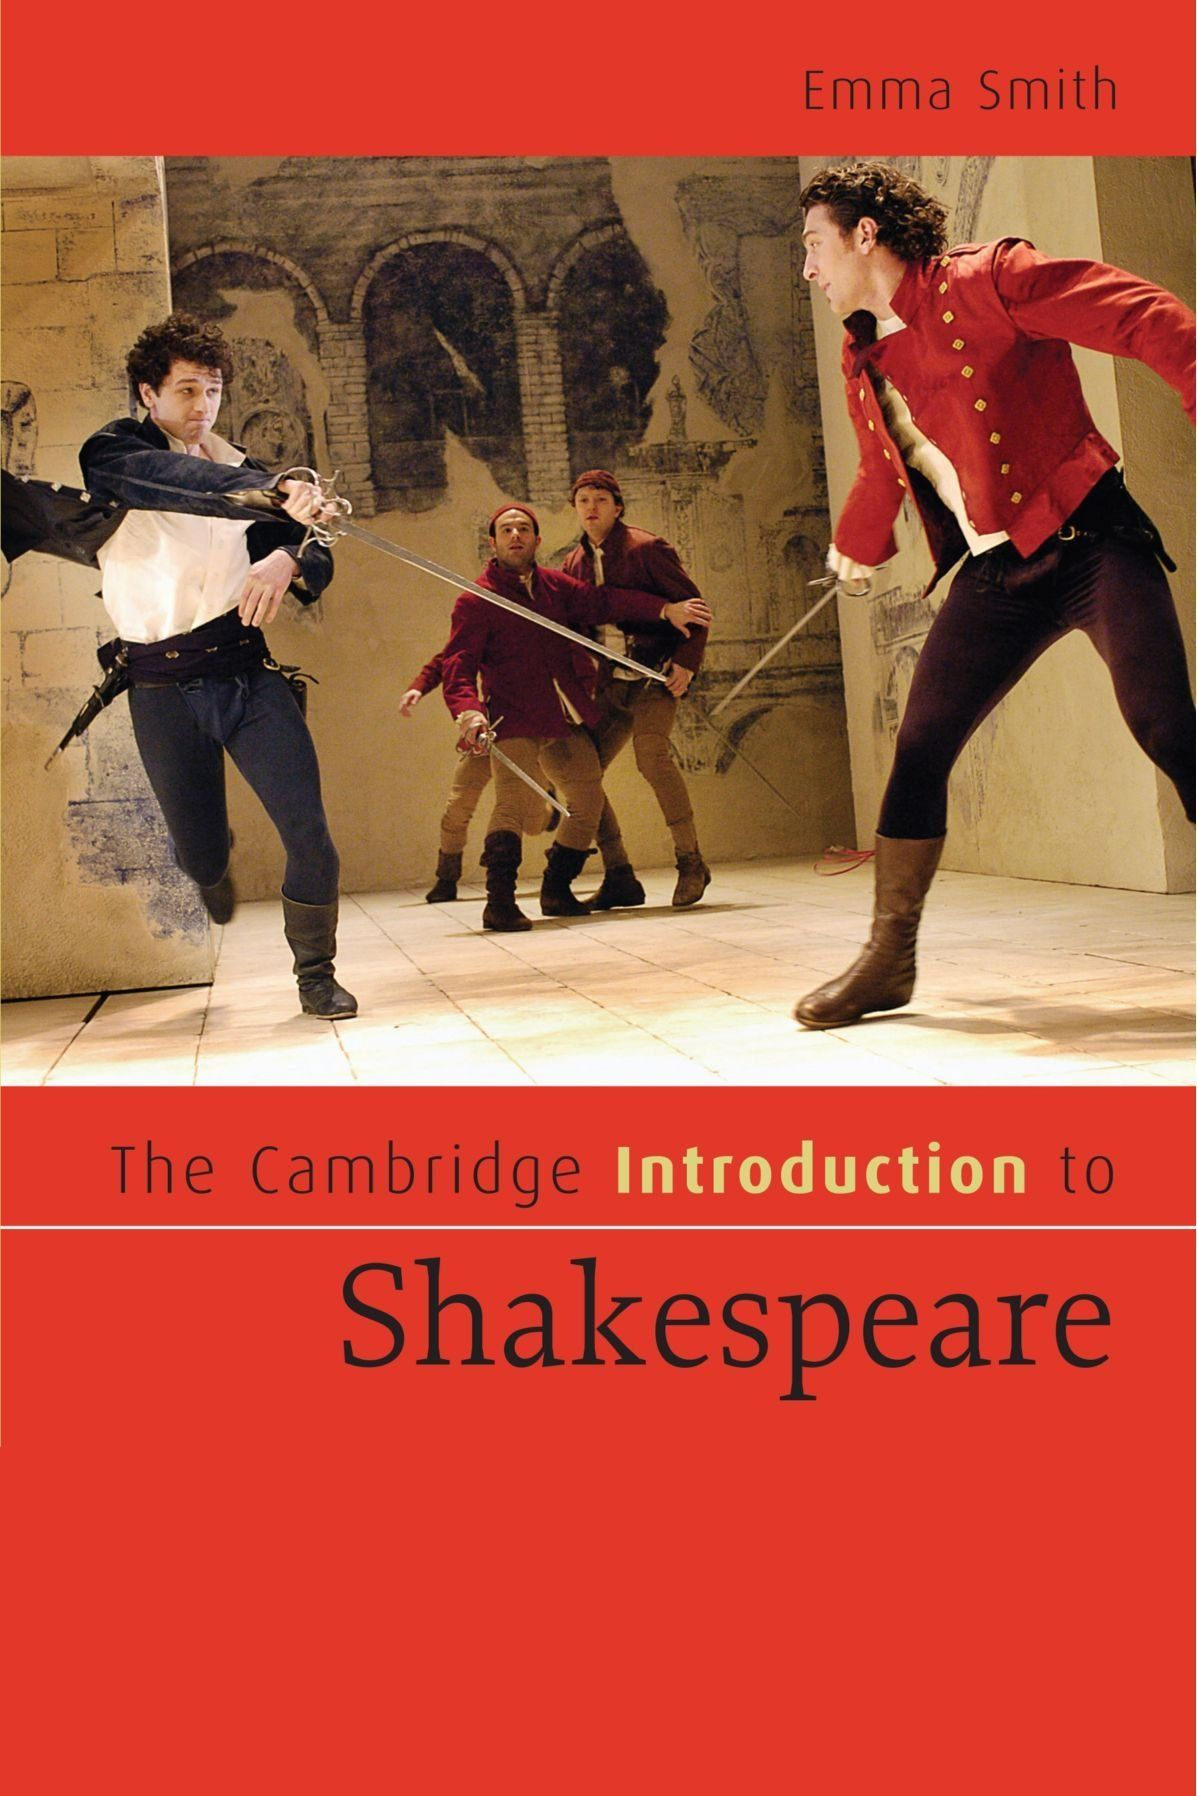 The Cambridge Introduction to Shakespeare - The Cambridge Introduction to Shakespeare